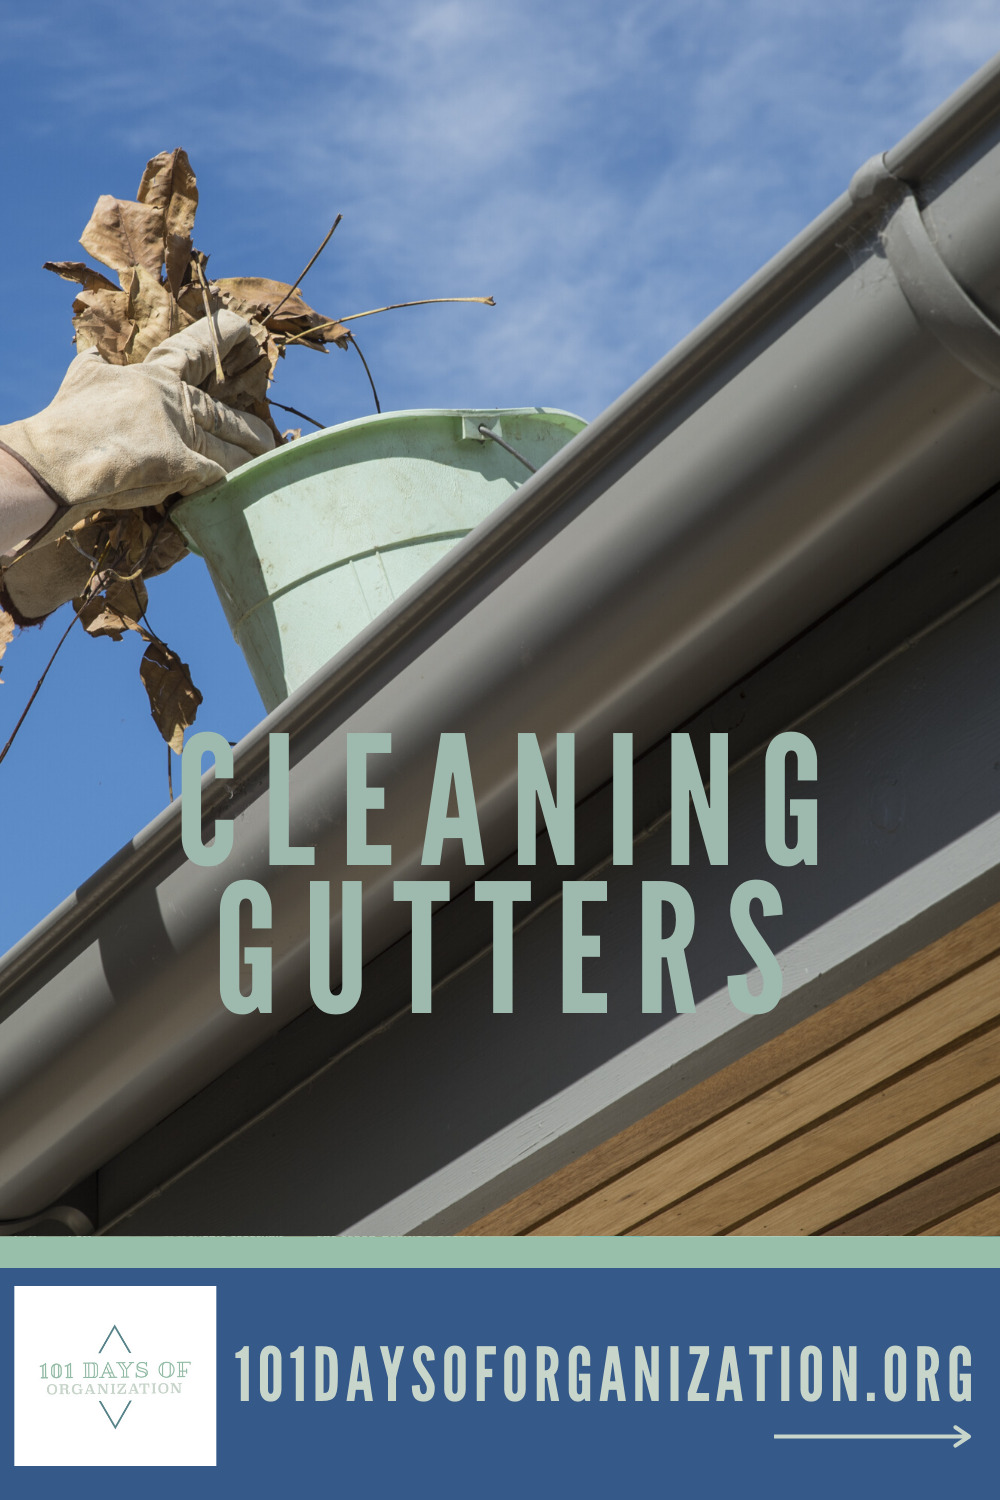 Cleaning gutters is one of those home maintenance tasks many dread, but I am not sure why. Let me show you the easy way to clean your gutters and keep your house safe from water damage. #cleaninggutters #howtocleangutters #homemaintenance